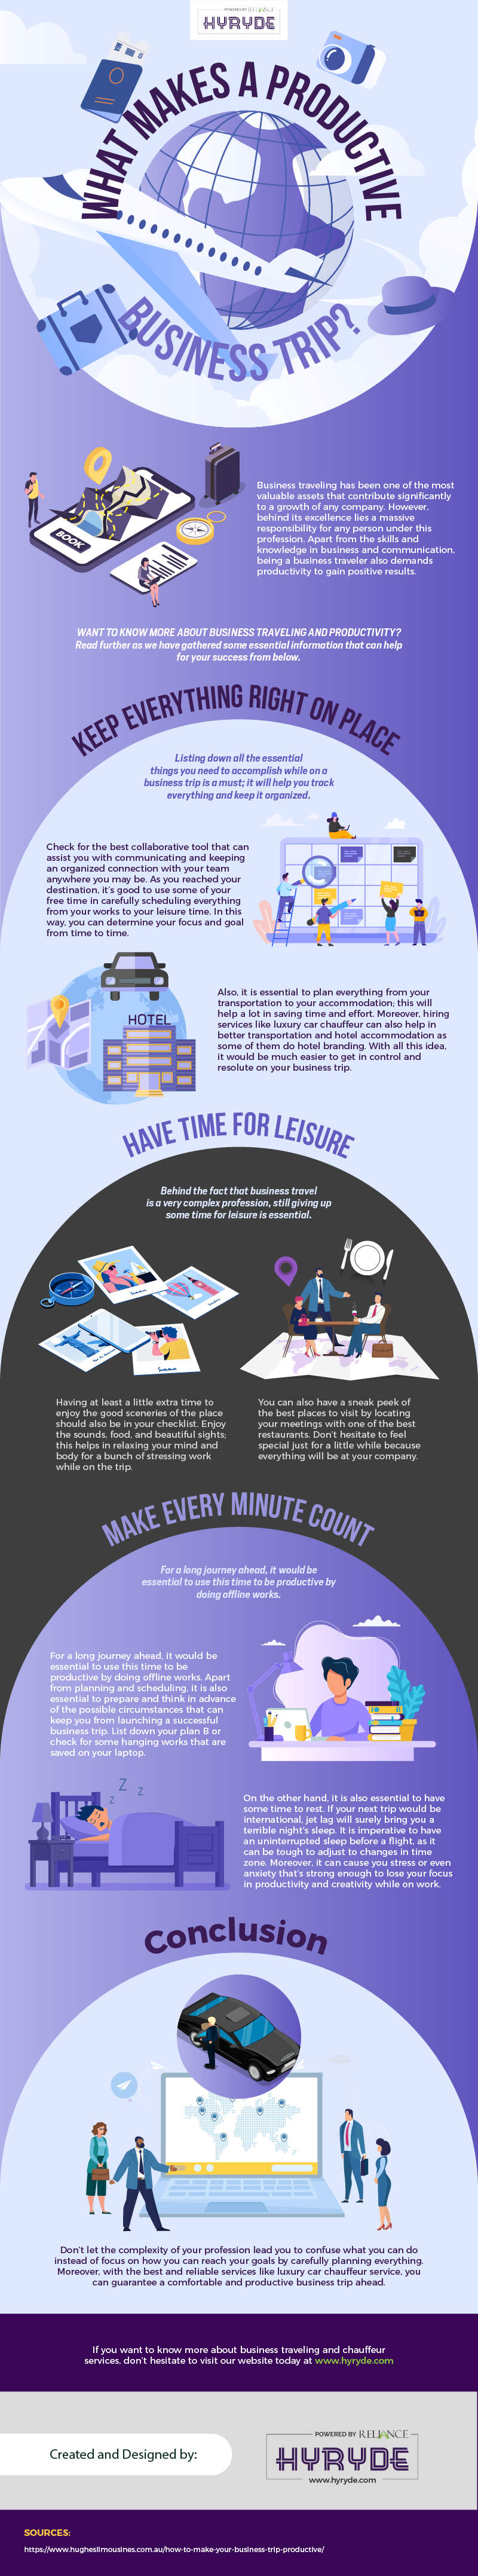 What Makes a Productive Business Trip